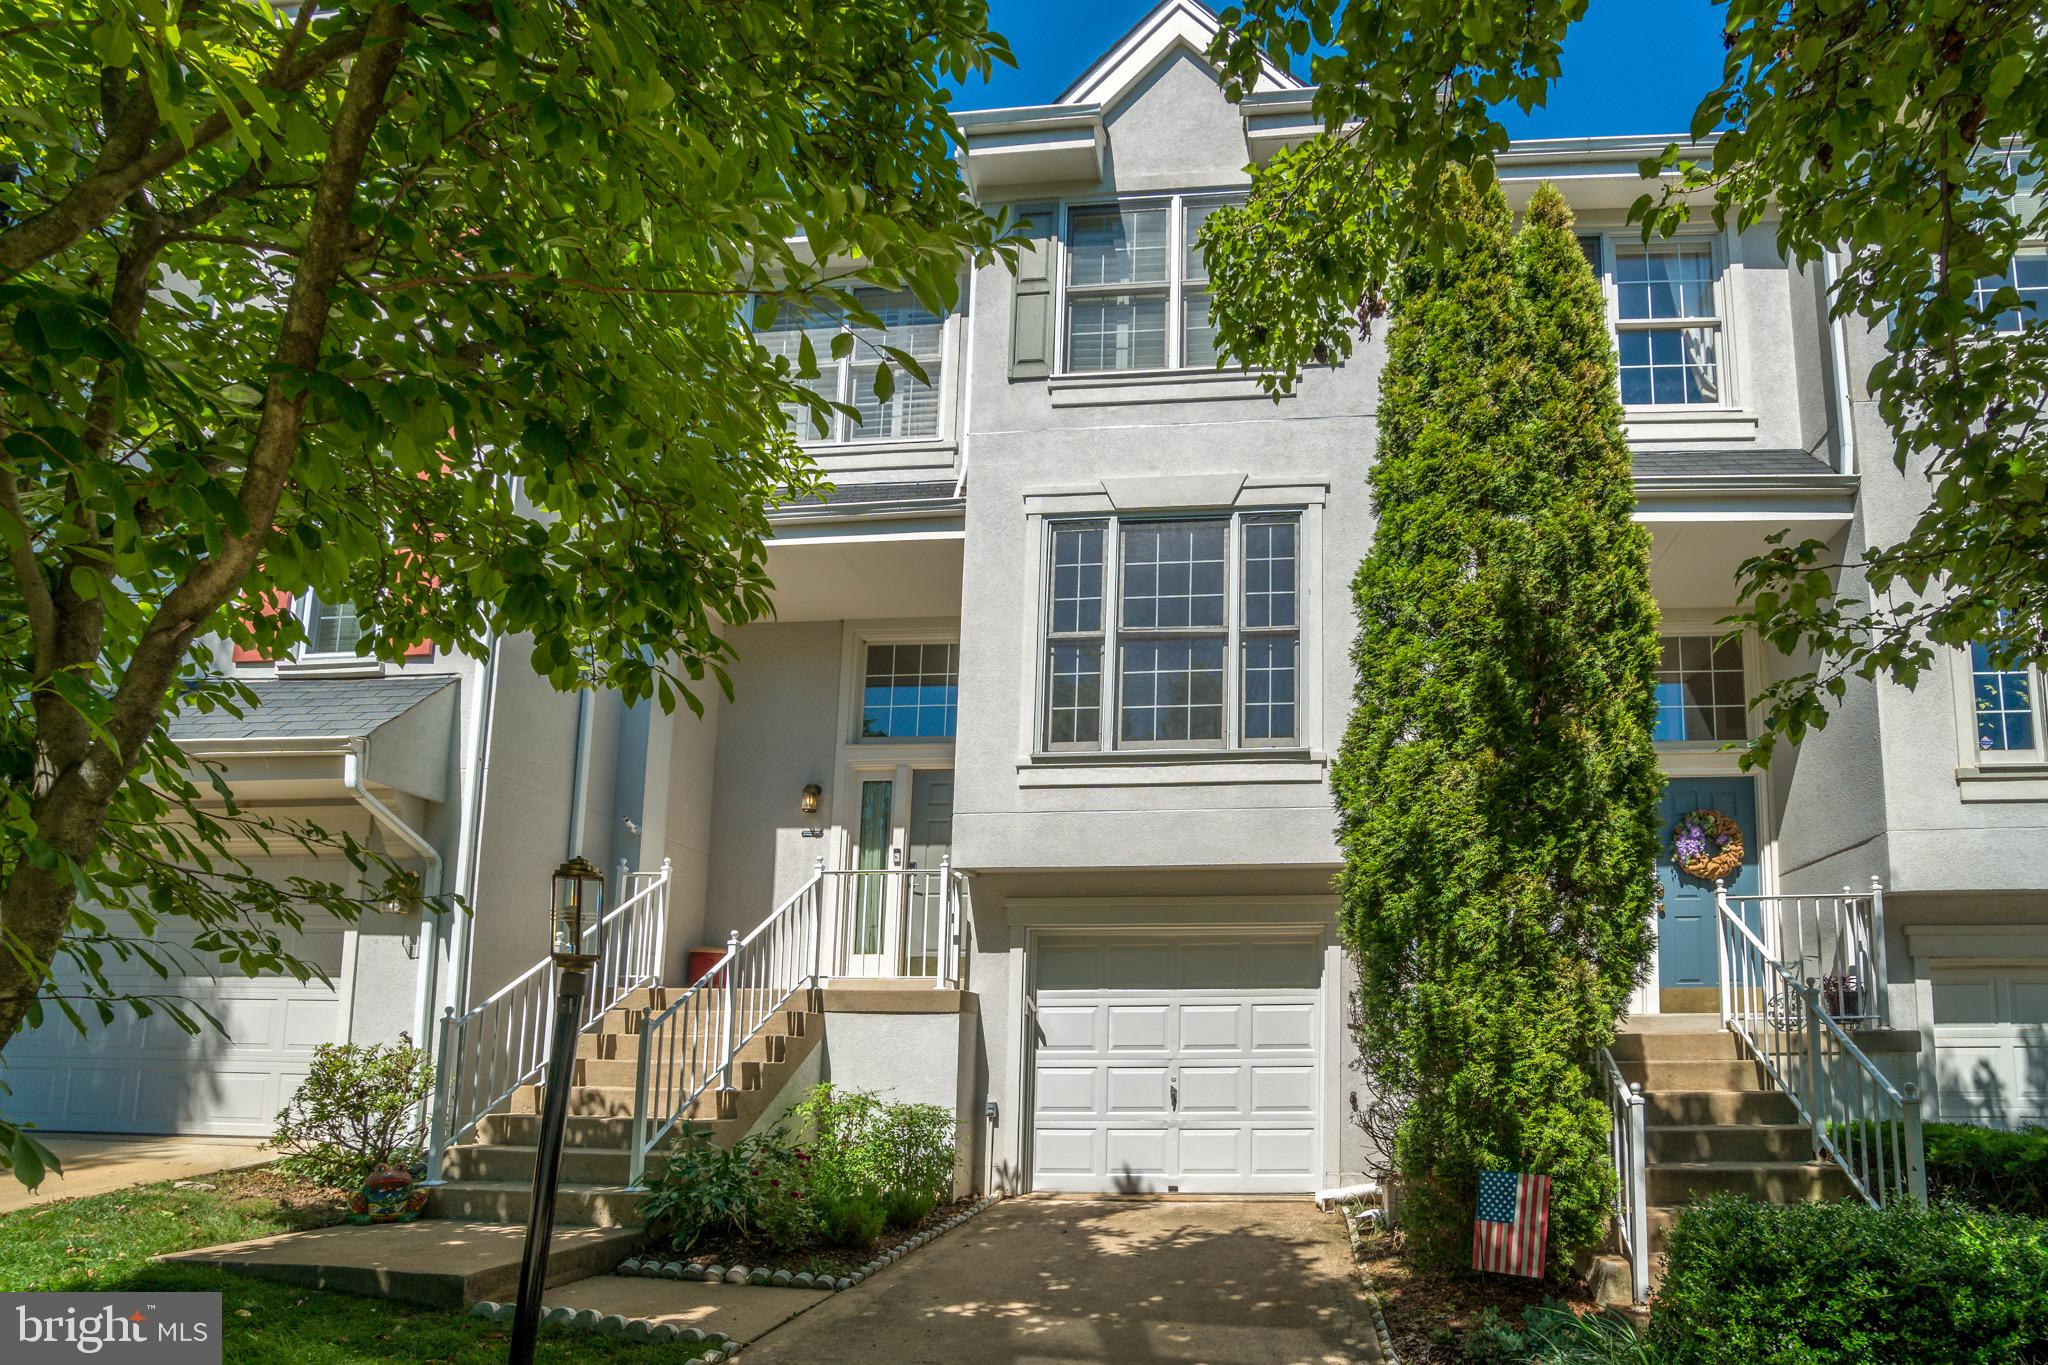 Fall in love with this awesome 3 BR/2.5 bath townhouse (with garage!) in this pretty cluster in Reston. The sunny main level has a bright eat-in kitchen, The big living/dining room  is perfect for entertaining and opens to a great 2- level deck & fenced backyard. Upstairs you'll find the master suite plus 2 bedrooms all with peaked ceilings. The finished basement has a versatile rec room,  big laundry room, and a surprising amount of storage space! New in 2018: HVAC, Tankless Water Heater, Roof/Gutters, Washer/Dryer. New in 2017: Kitchen appliances. Hardwood flooring  on main and upper levels!  Move-in ready and close to parks, trails, Northpoint, Lake Anne, Reston Town Center, Metro, Airport and commuter routes. This townhouse sparkles! Come see it for yourself at this Sunday's Open House!